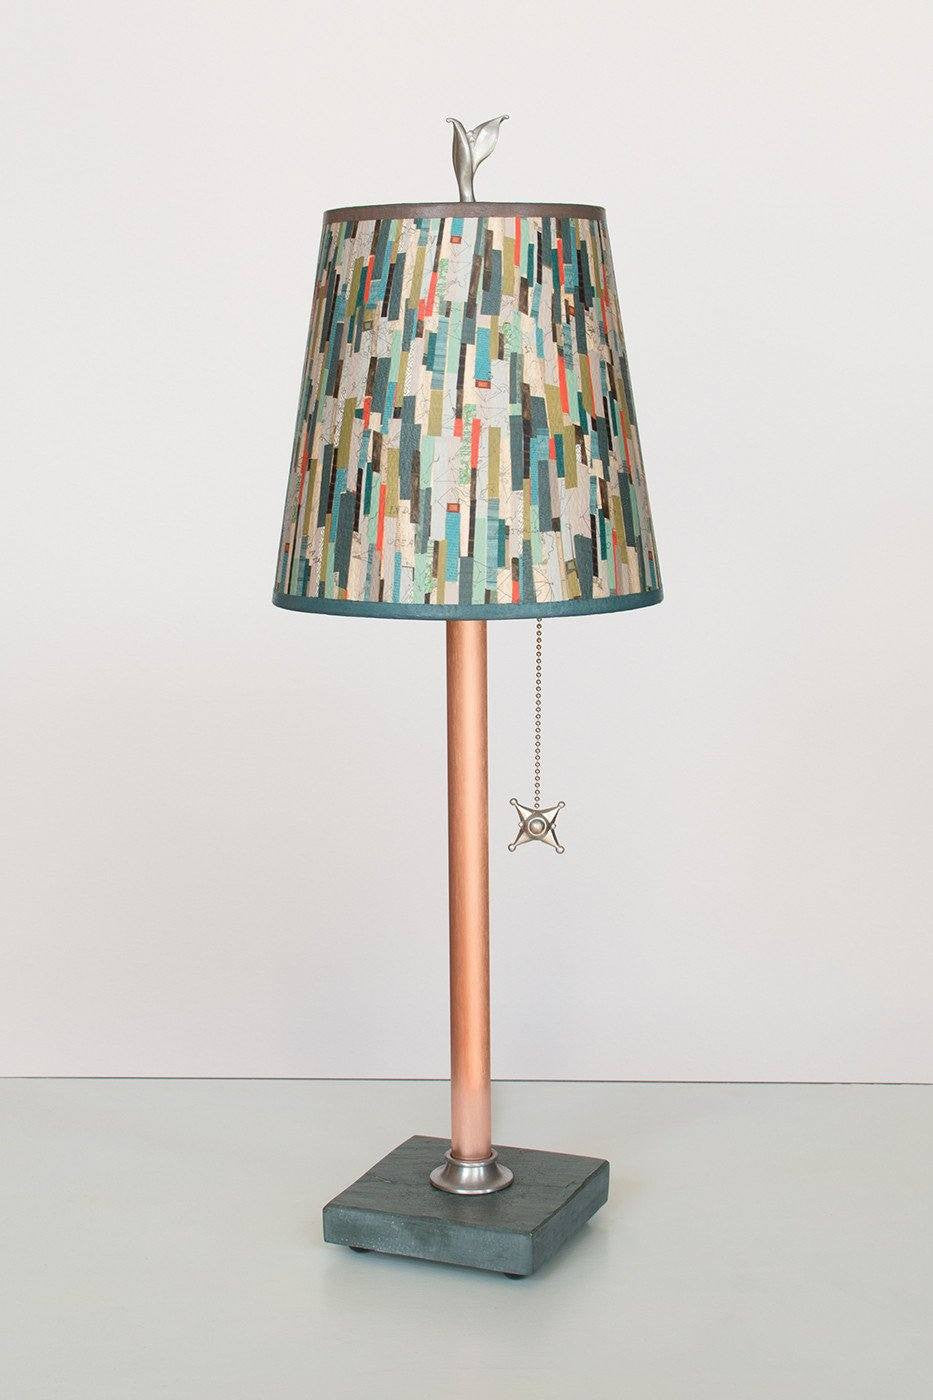 Copper Table Lamp on Vermont Slate Base with Small Drum Shade in Papers Lit